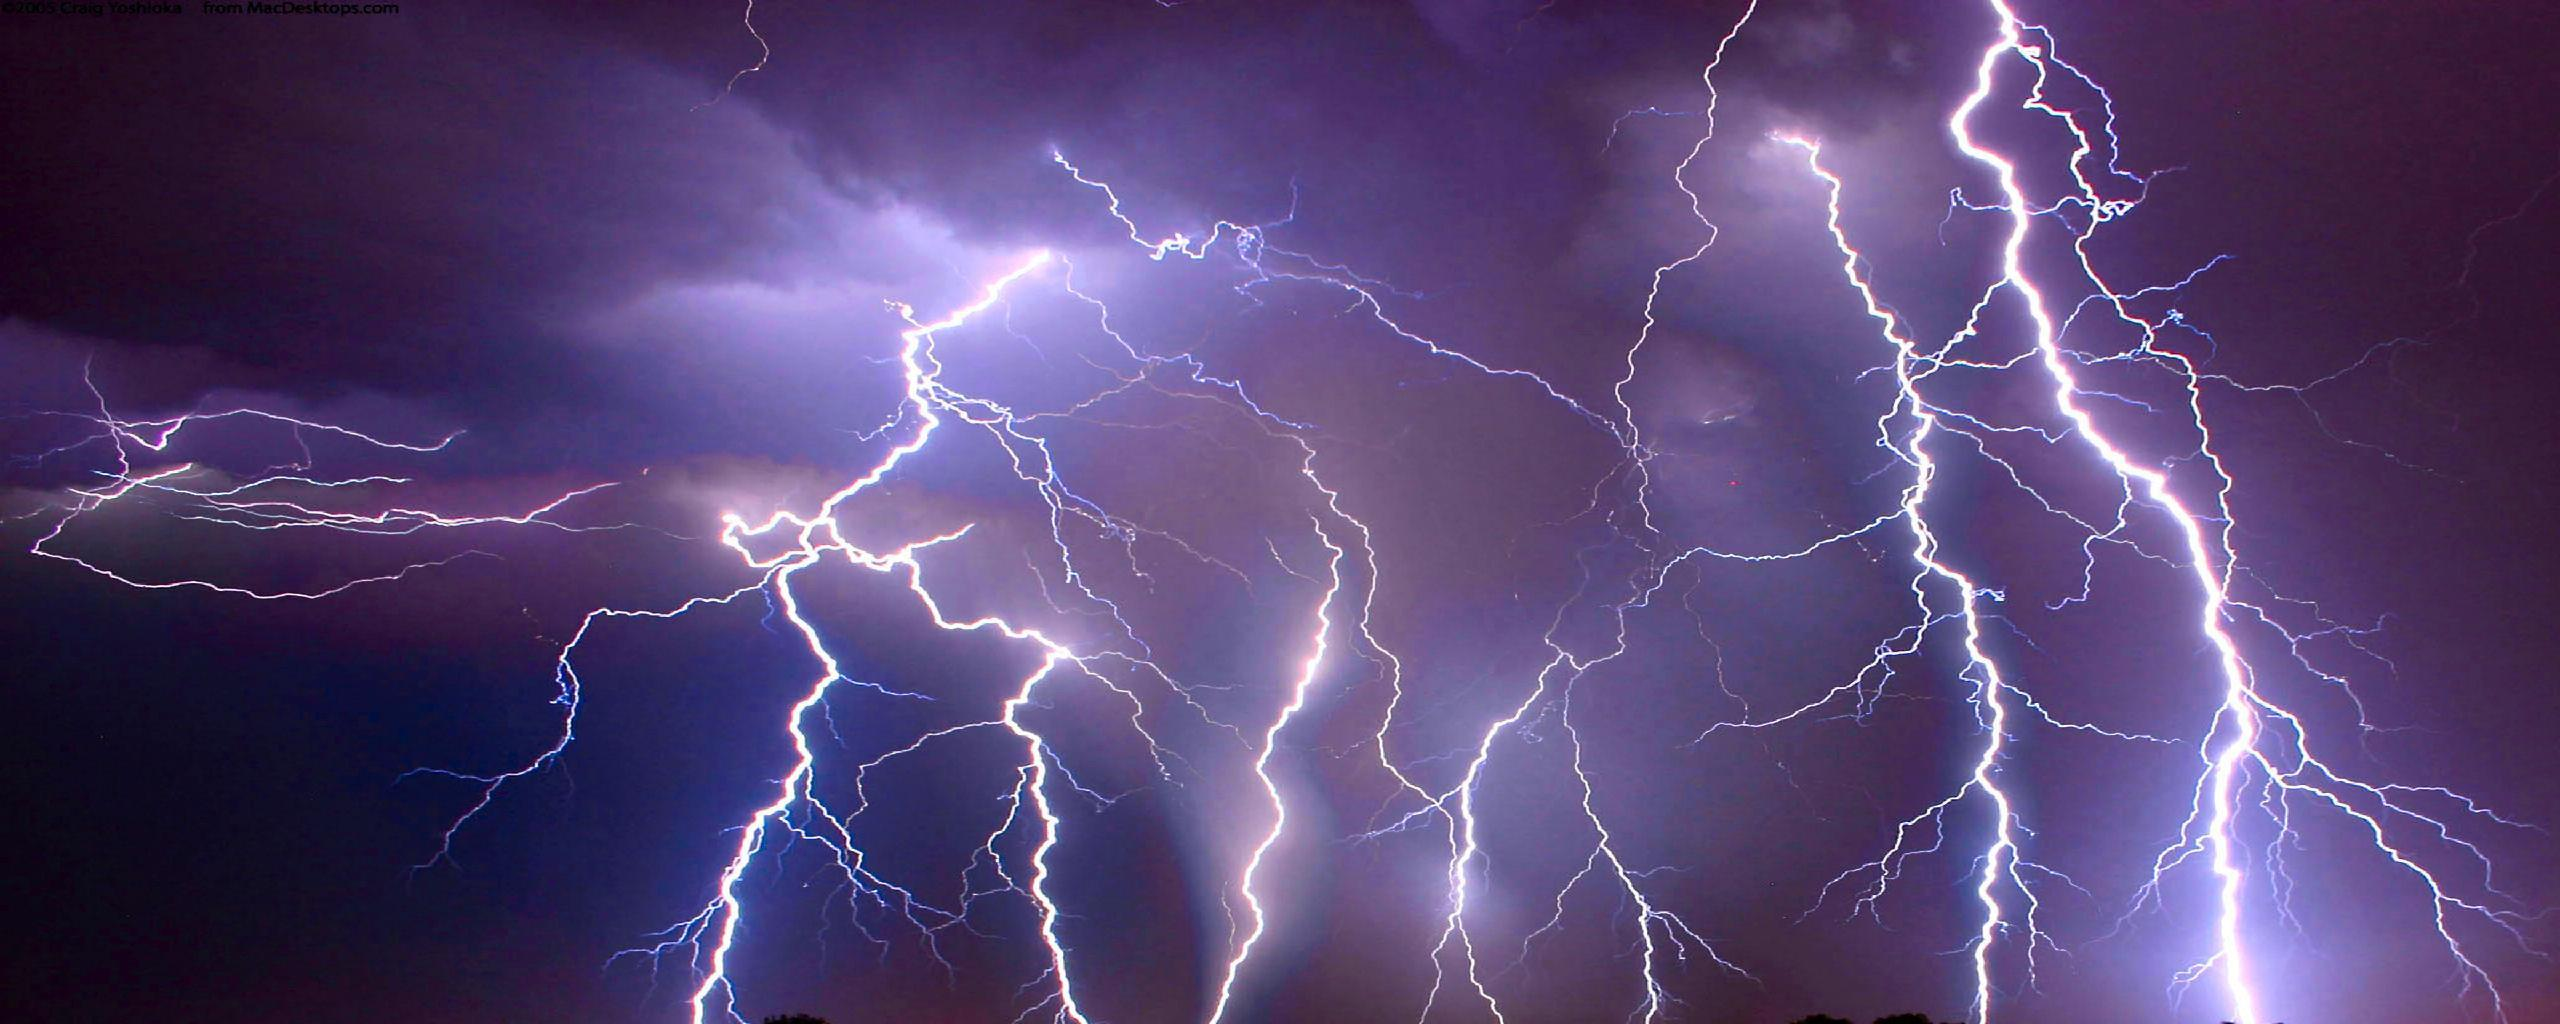 Awesome Lightning Pictures HD Wallpapers Free Download